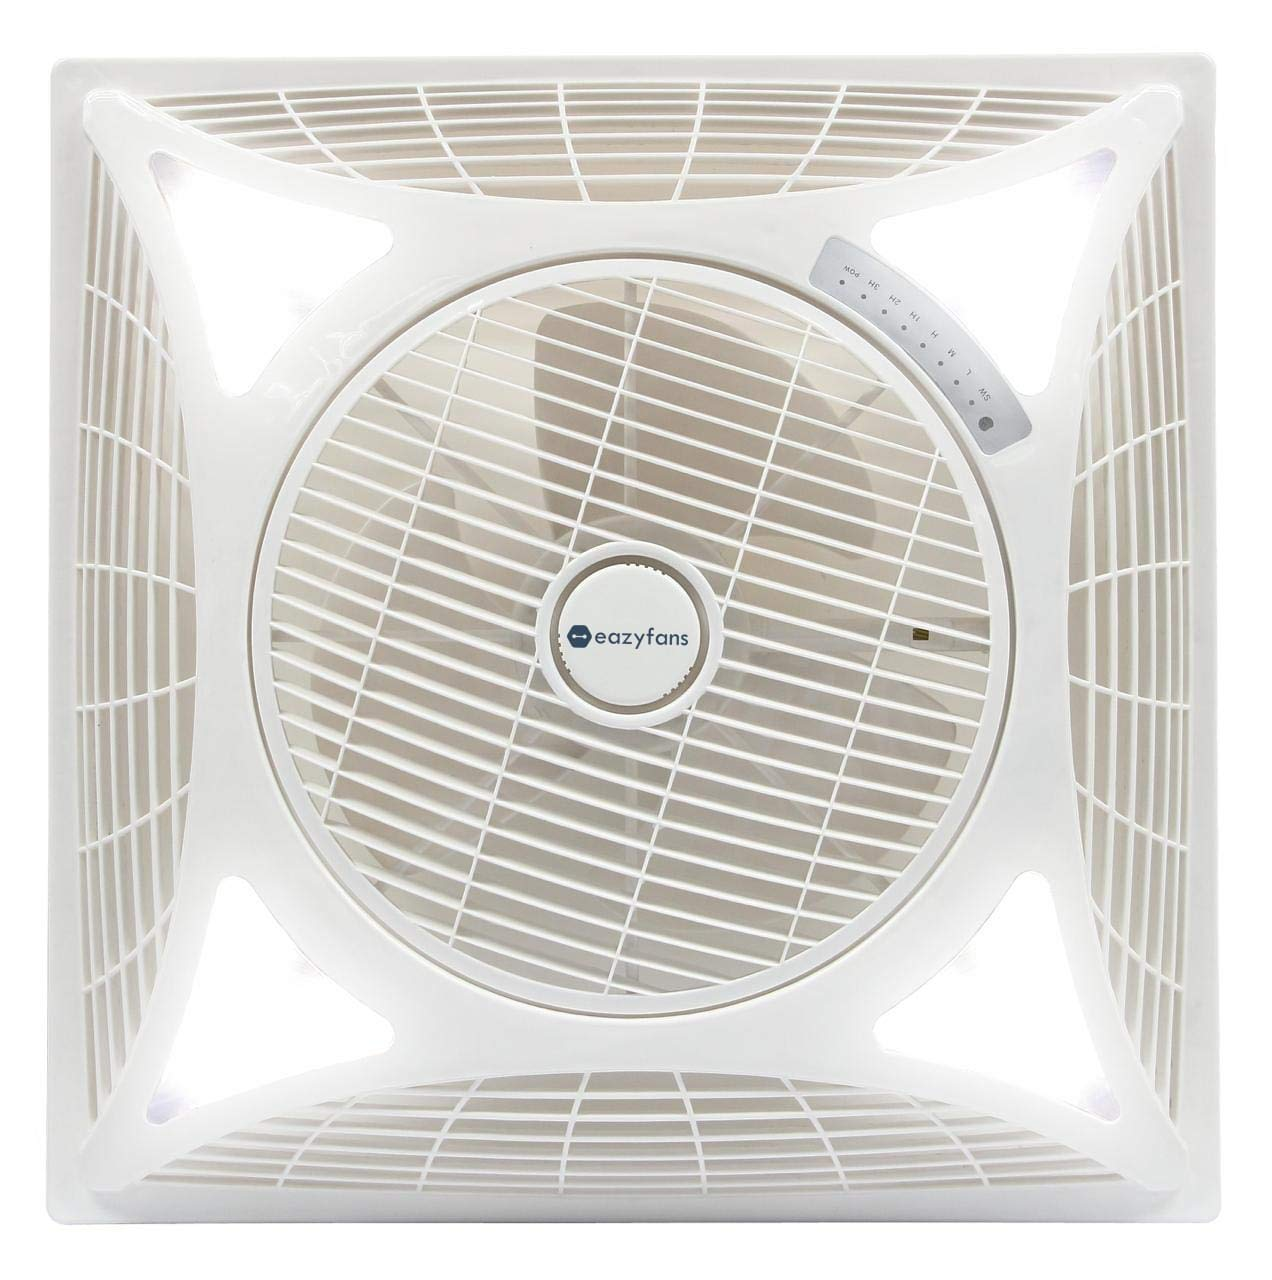 Buy Eazyfans Recessed Cassette False Ceiling Fan With Led 60 60cm White Online At Low Prices In India Amazon In